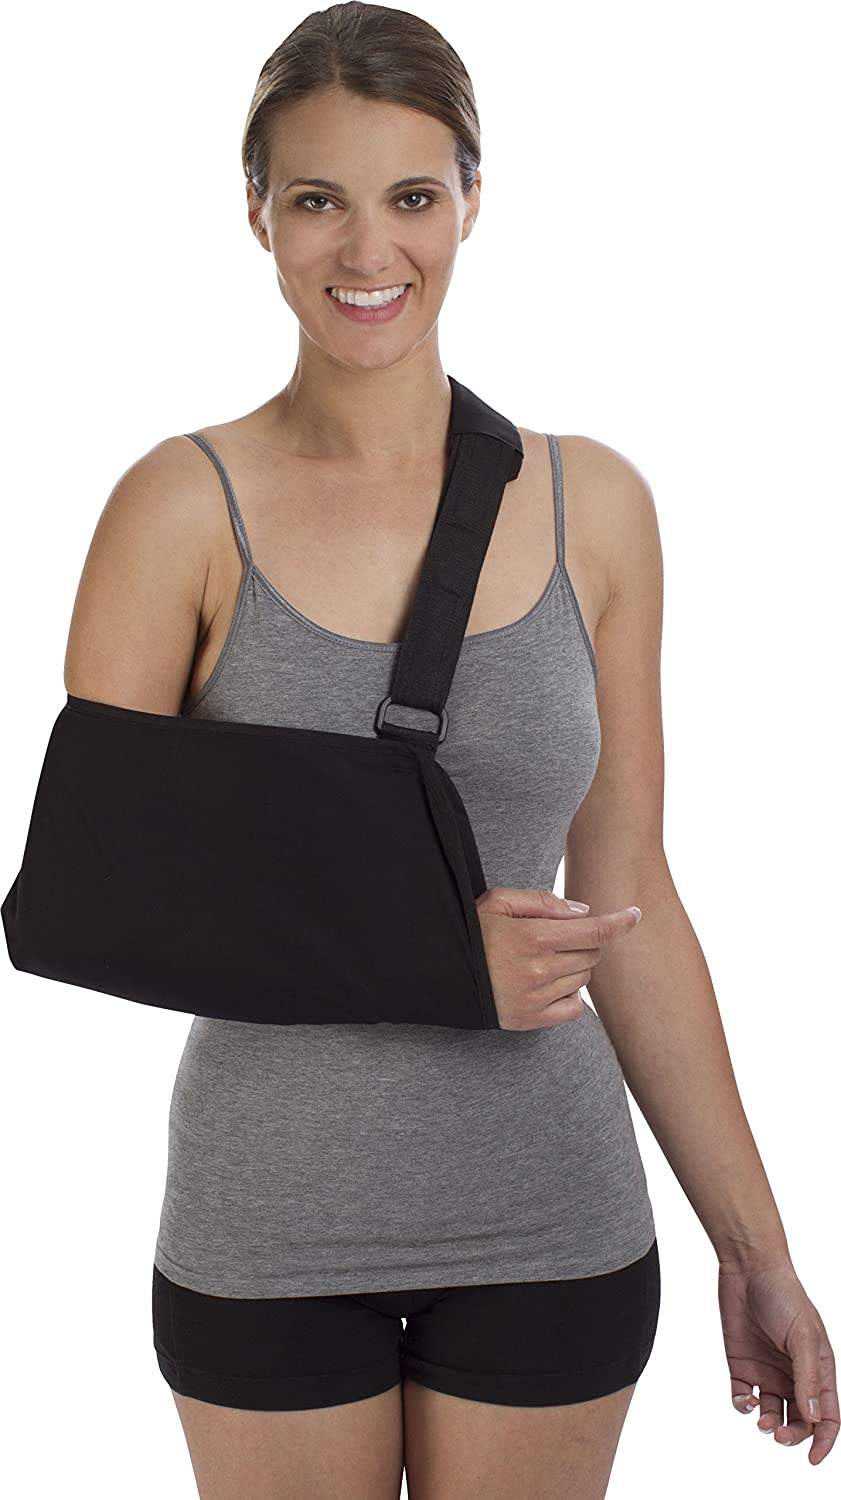 ProCare Deluxe Arm Support Sling, Medium : Health & Household